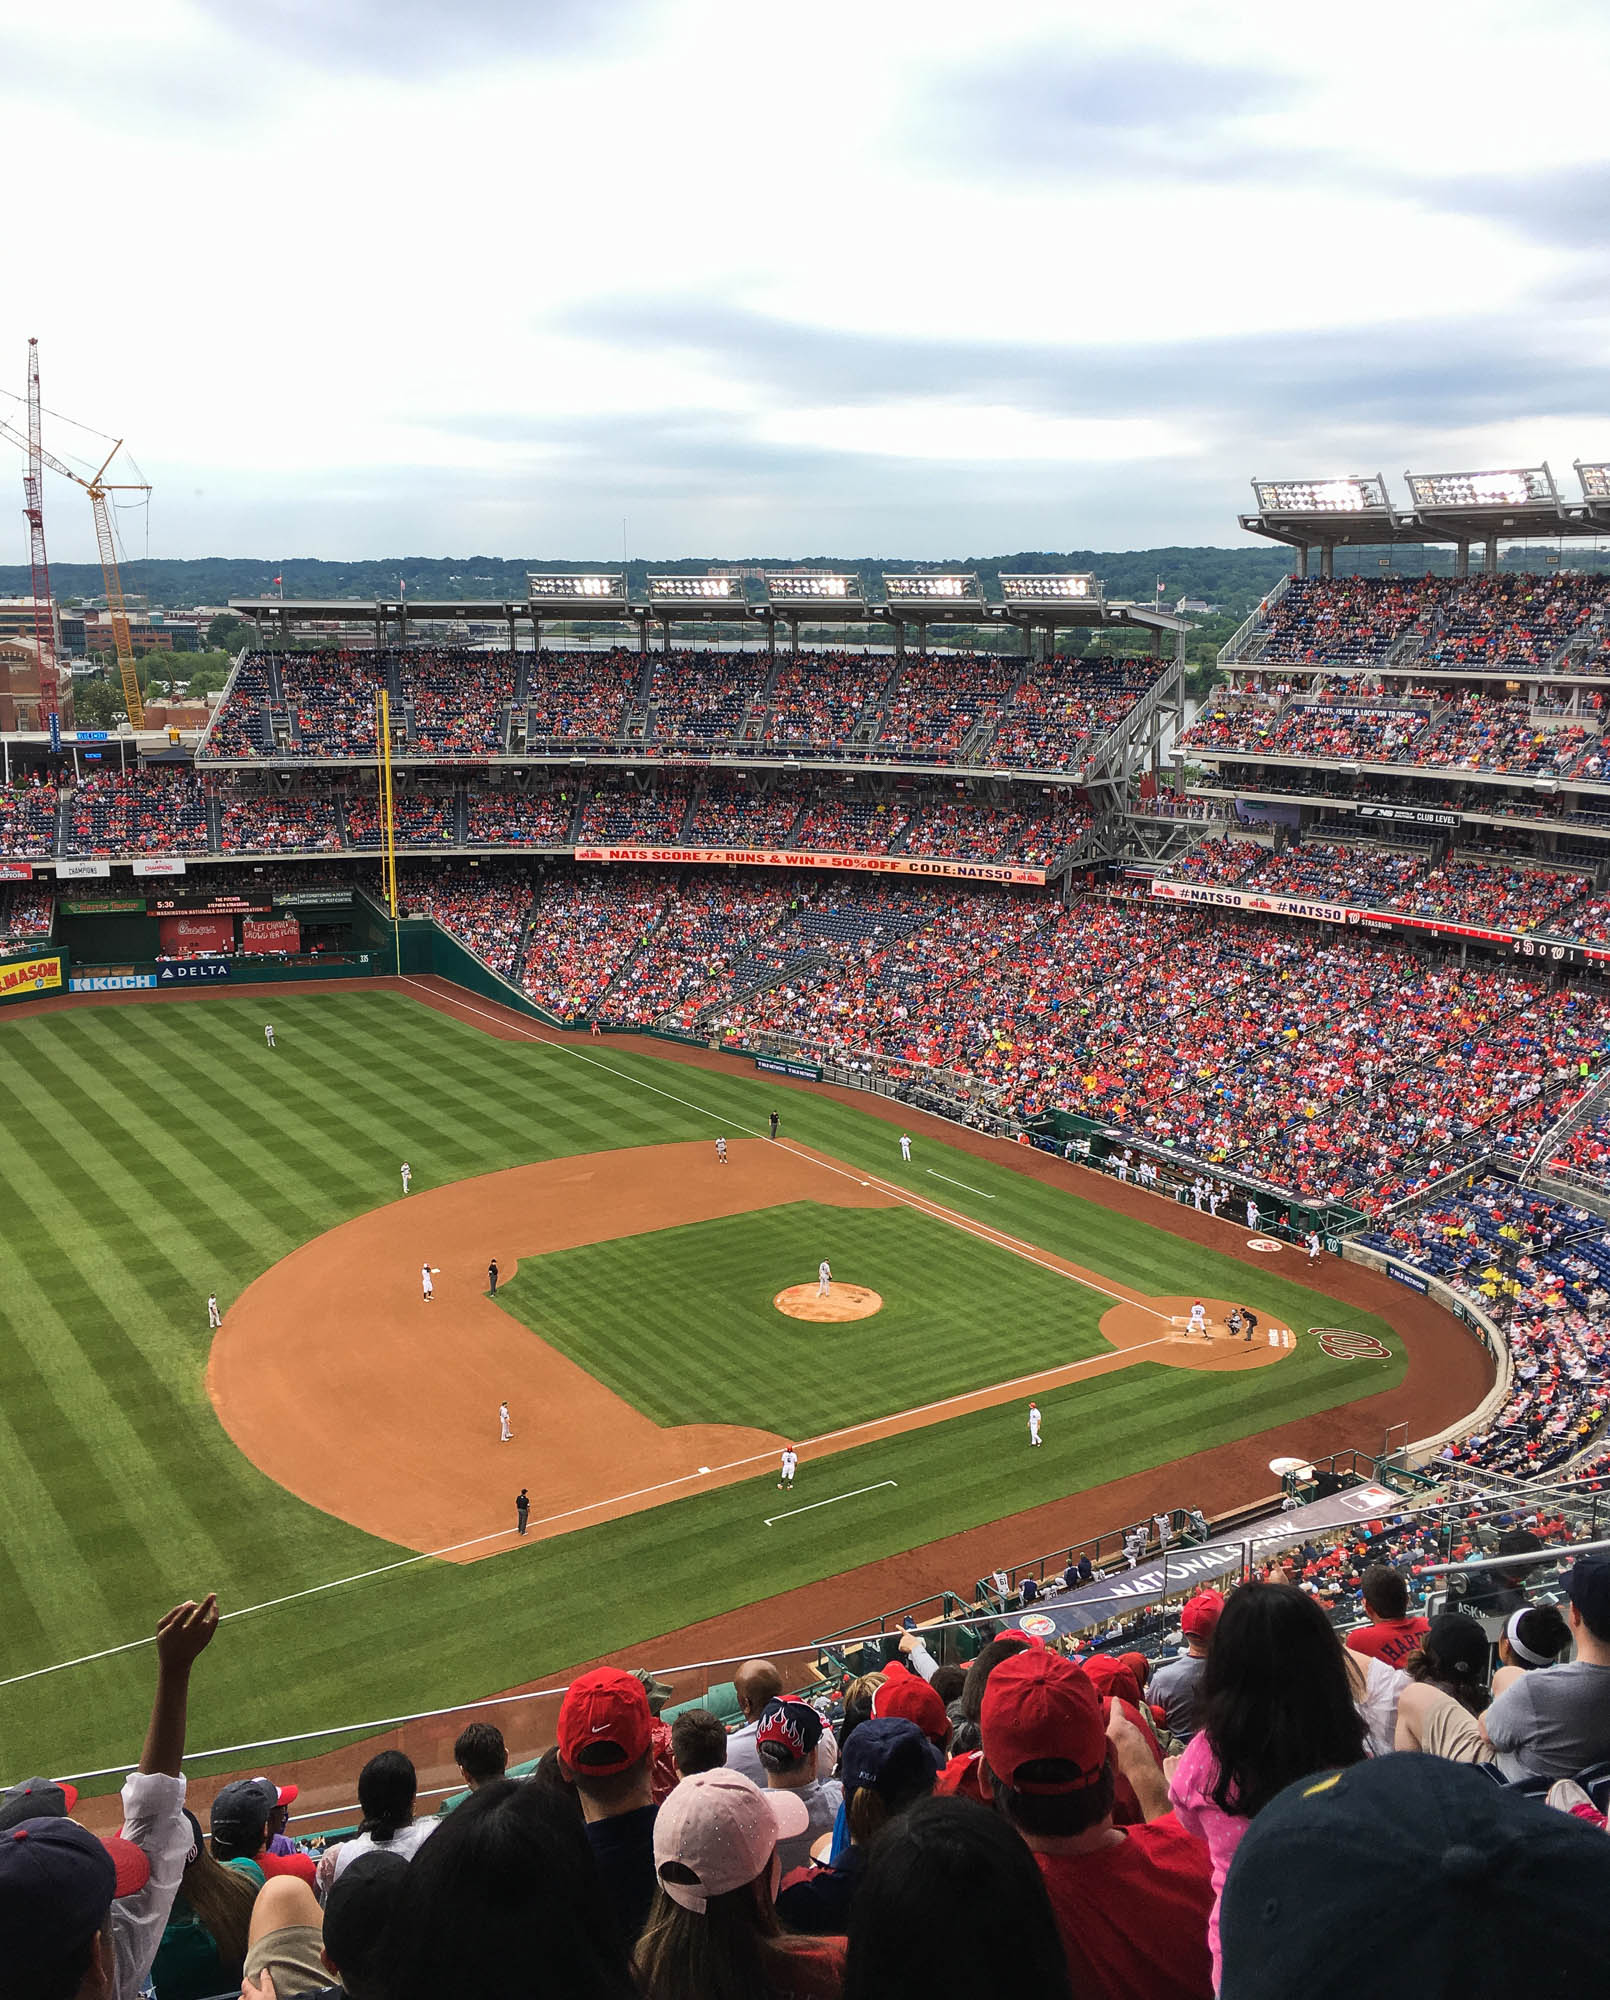 Best Summer Activities In DC by The District Table